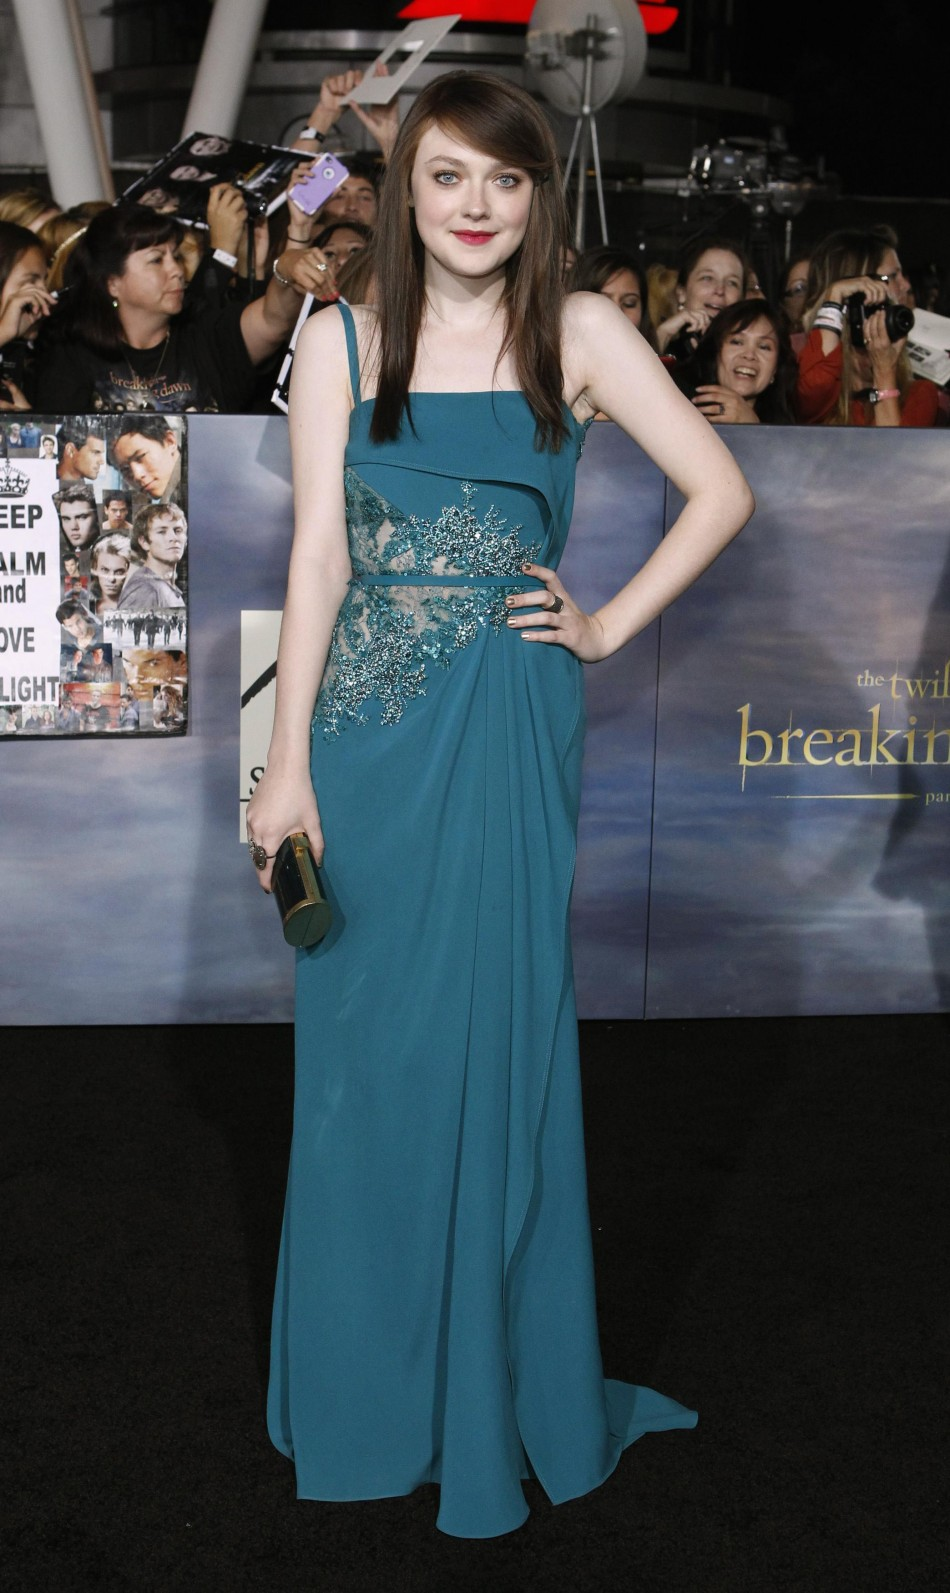 Cast member Dakota Fanning poses at the premiere of The Twilight Saga Breaking Dawn - Part 2 in Los Angeles